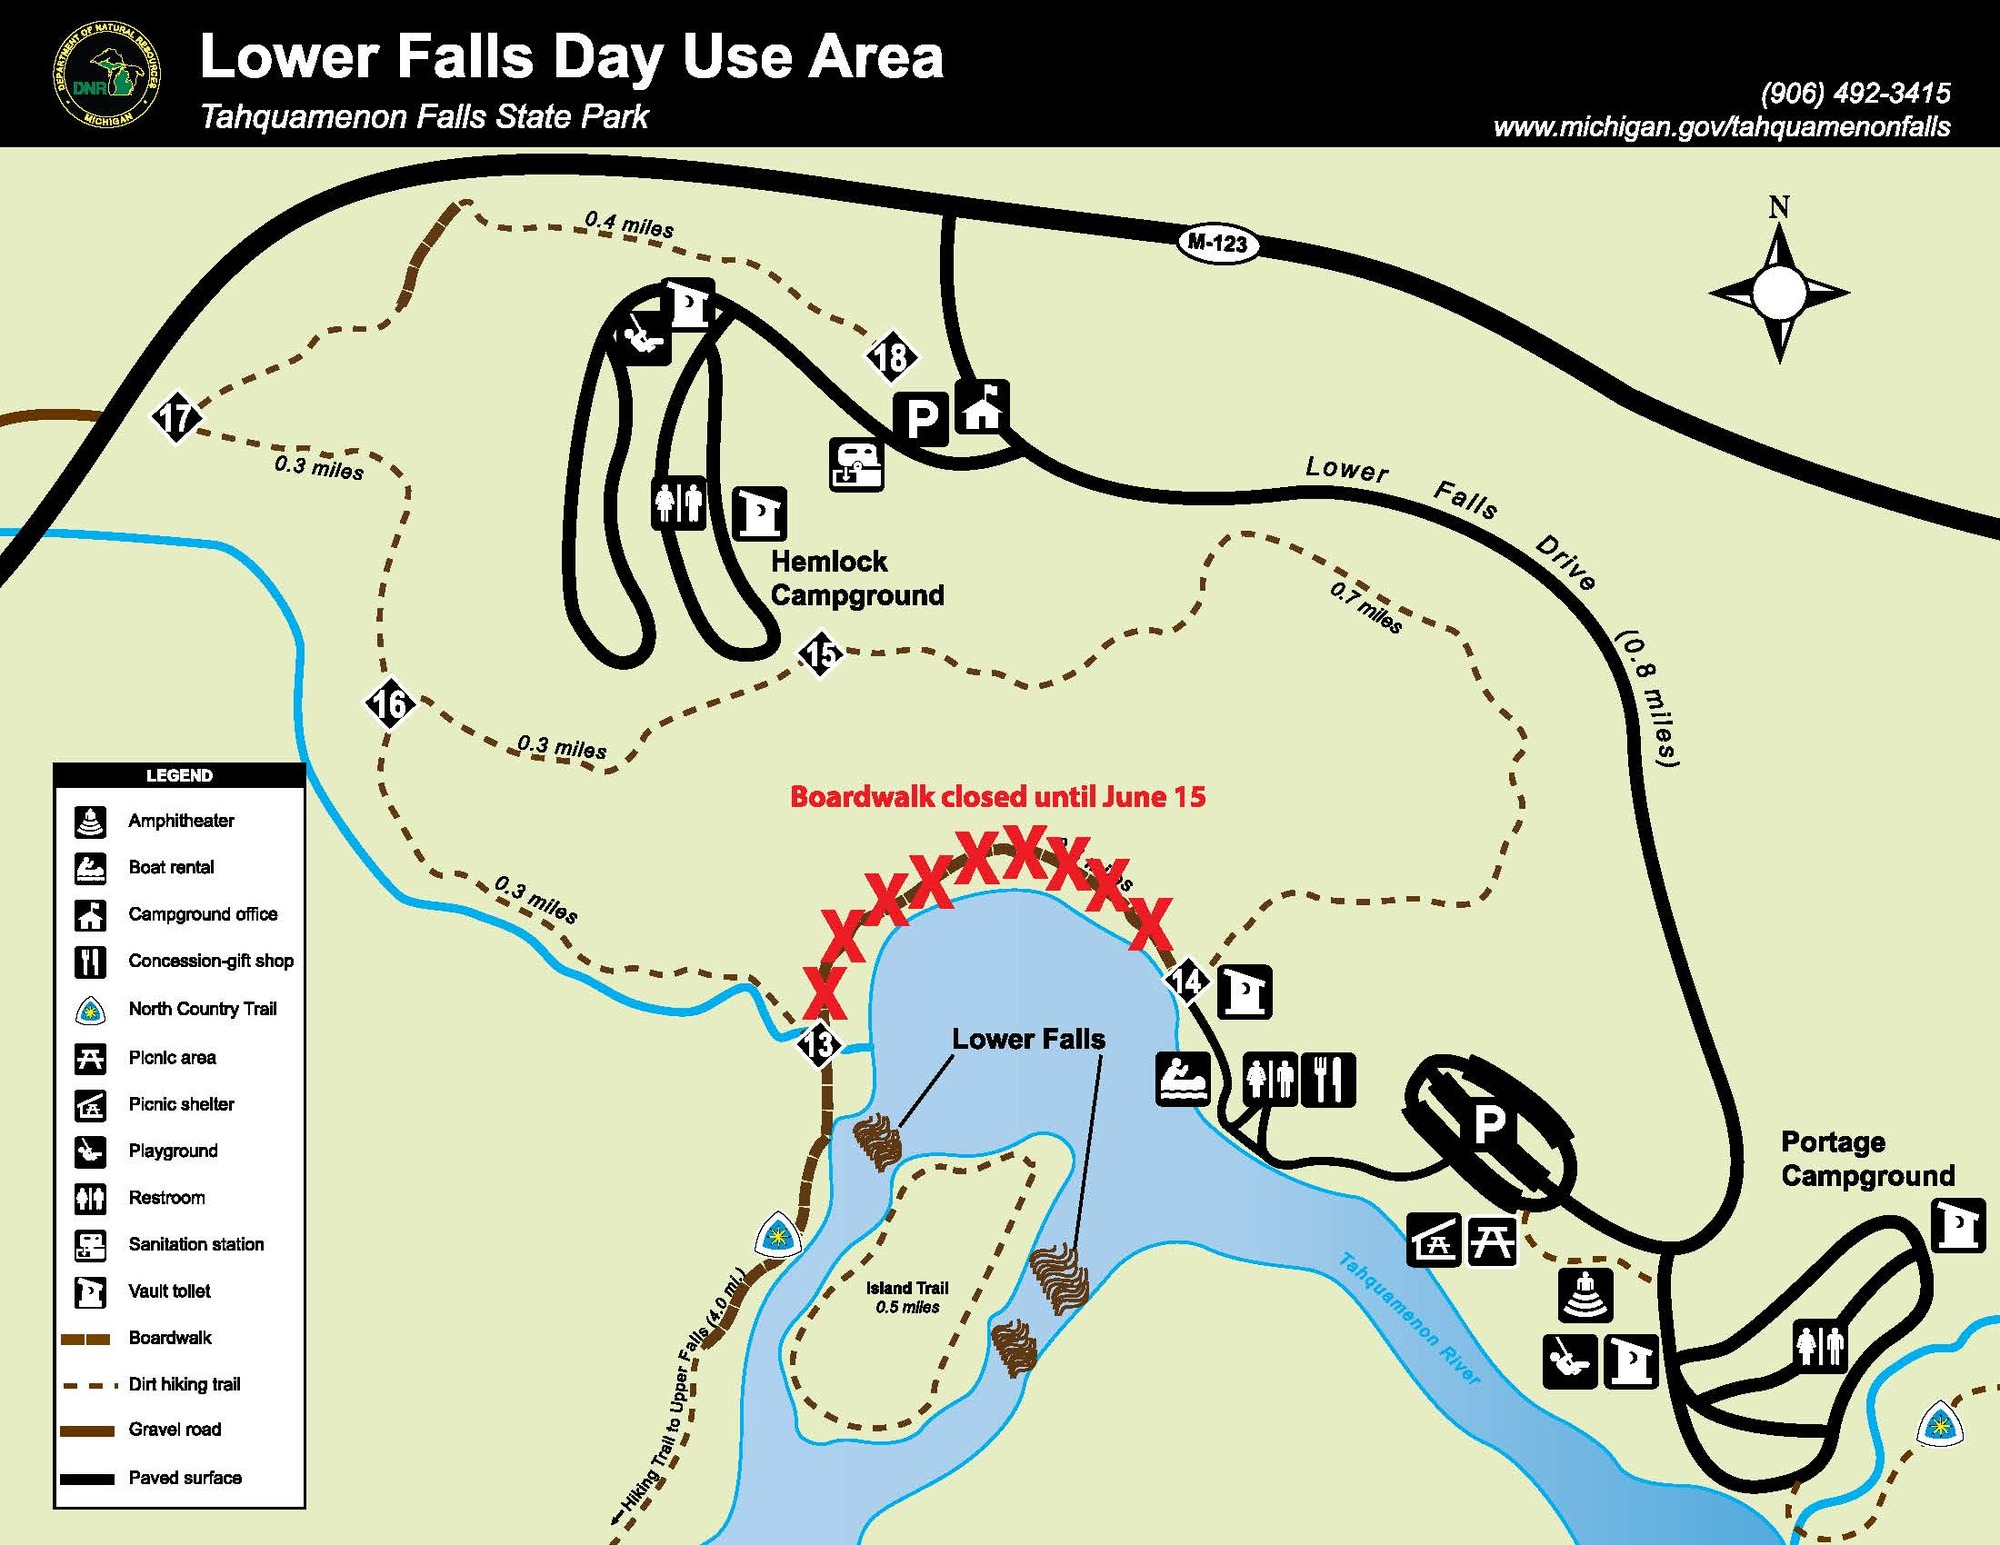 : A map shows the Lower Falls day use area, including the area to be closed temporarily for construction.